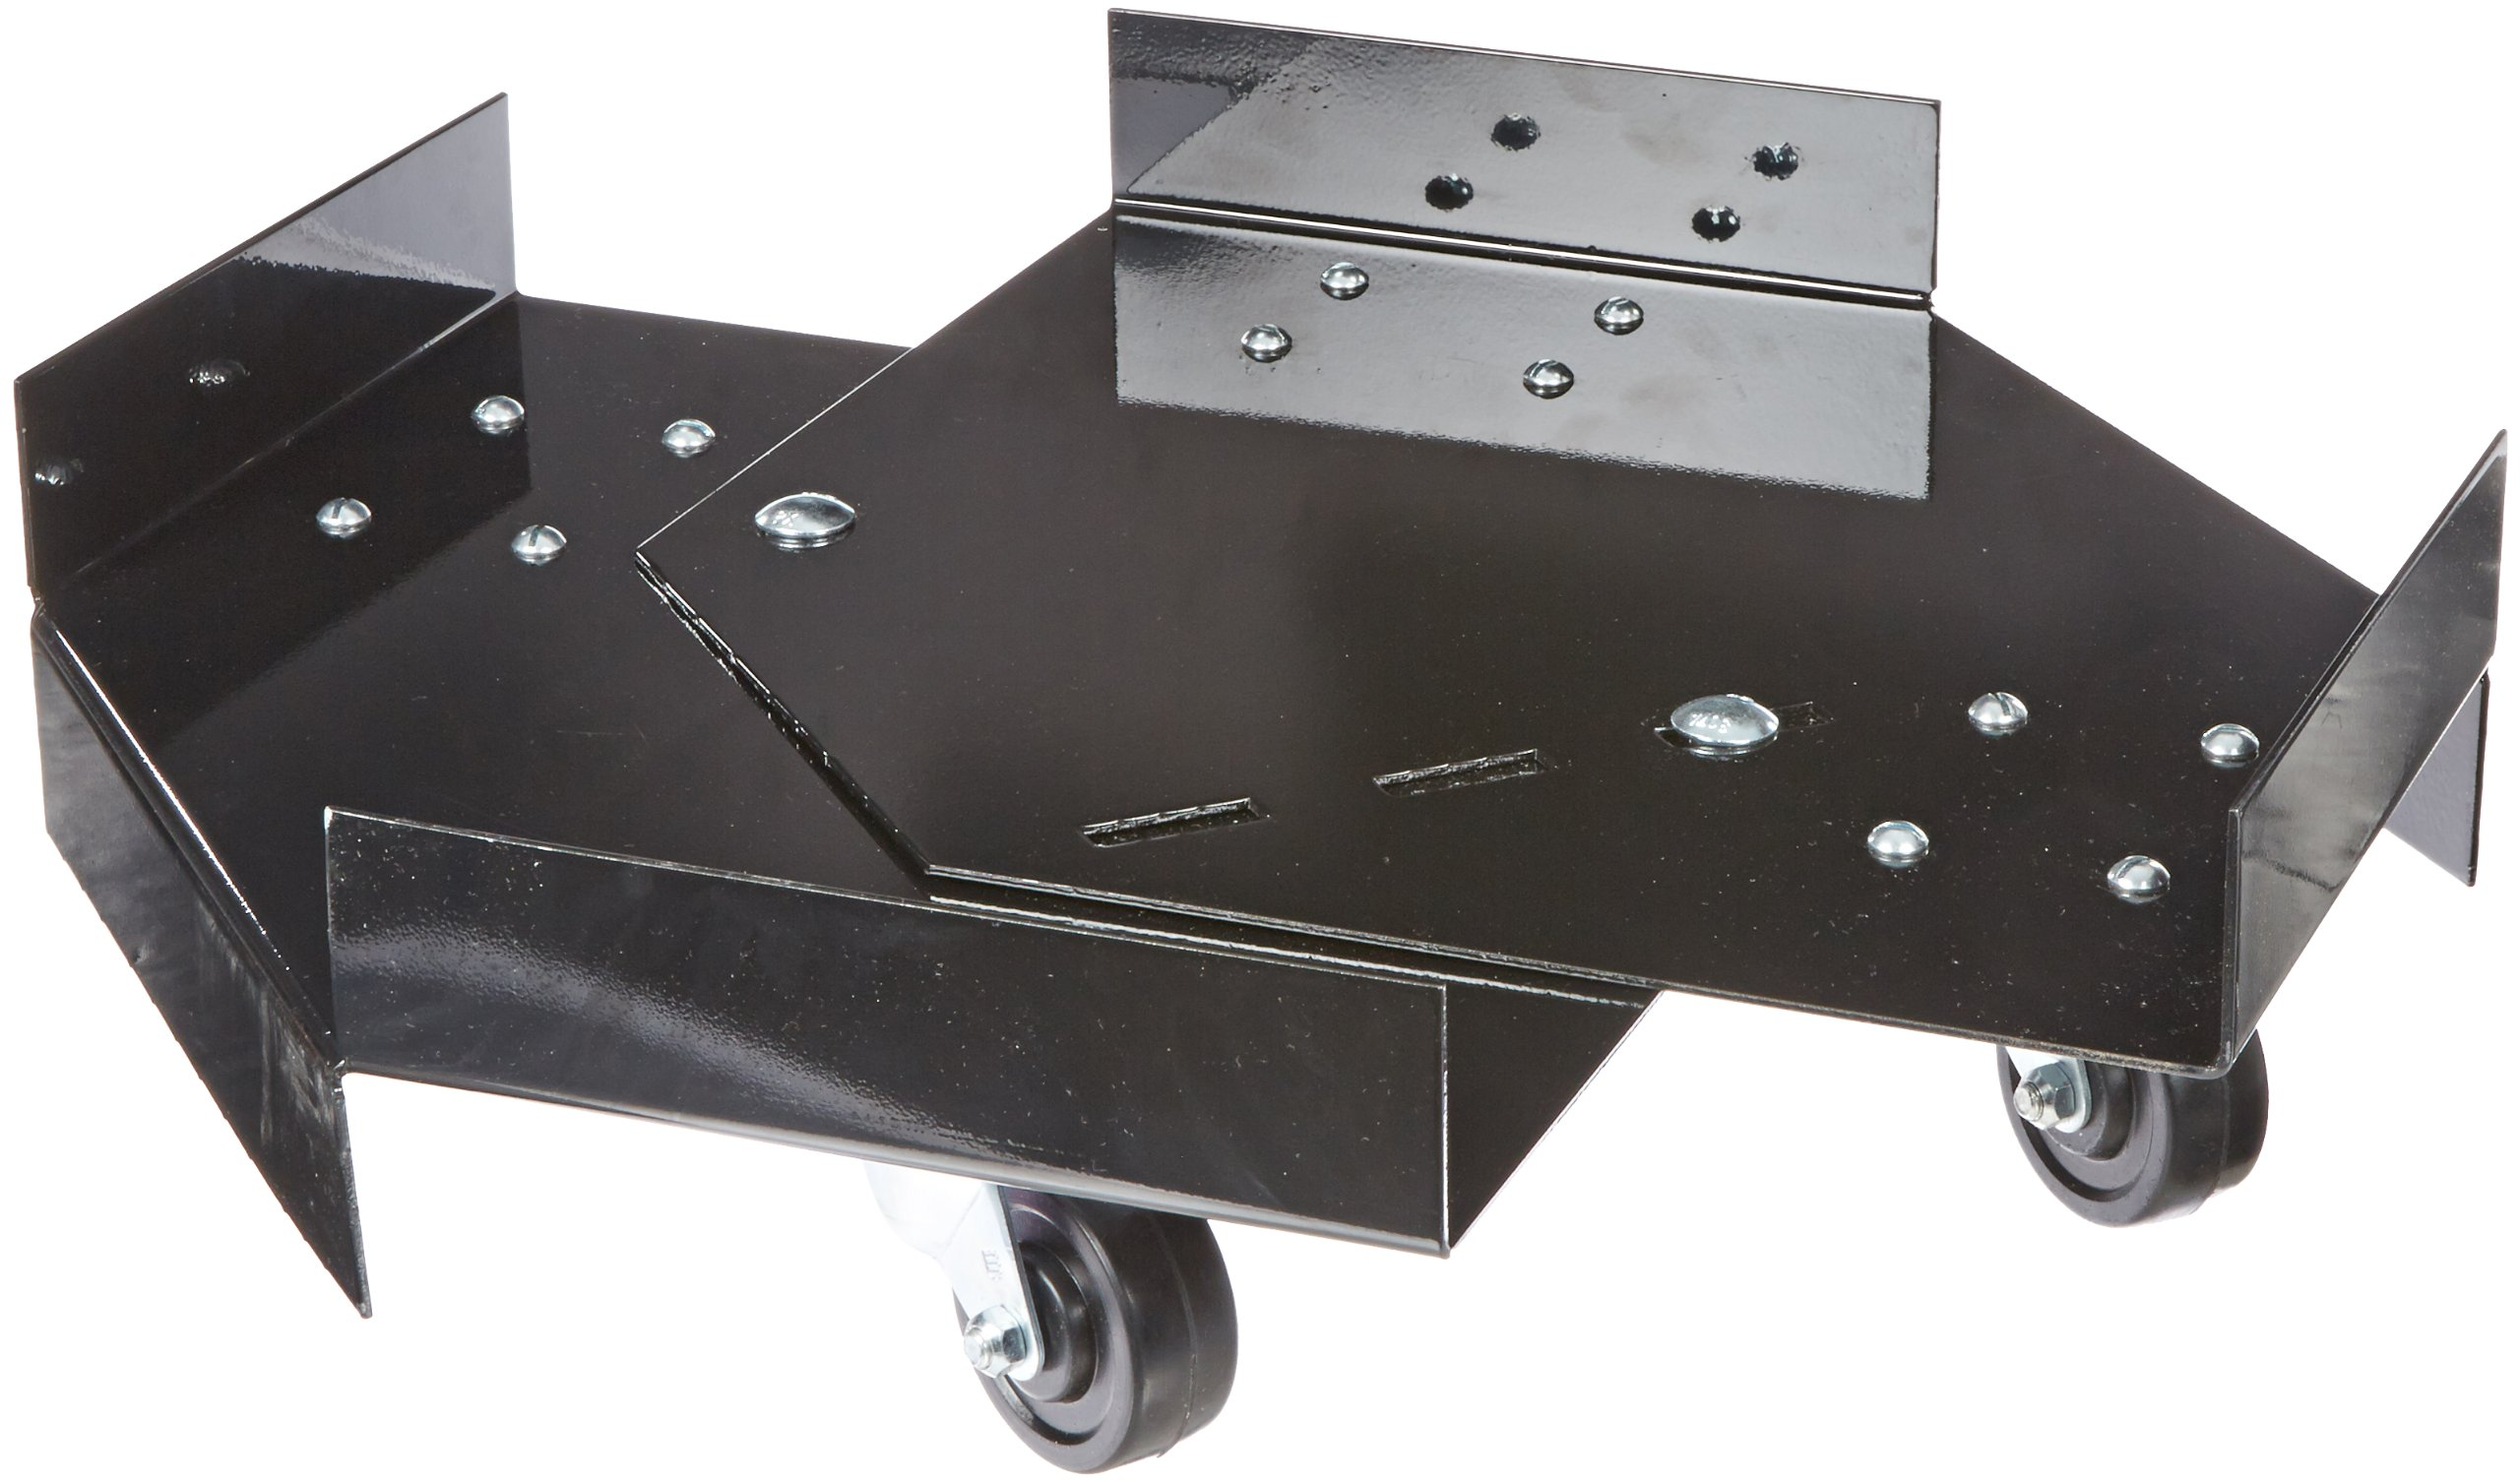 UltraTech 0417 Steel Dolly, 800 lbs Capacity, 26-1/2'' Length x 26-1/2'' Width x 5'' Height, Black, For Ultra-Hard Top P1 Plus Spill Pallet and Ultra-Spill Collectors